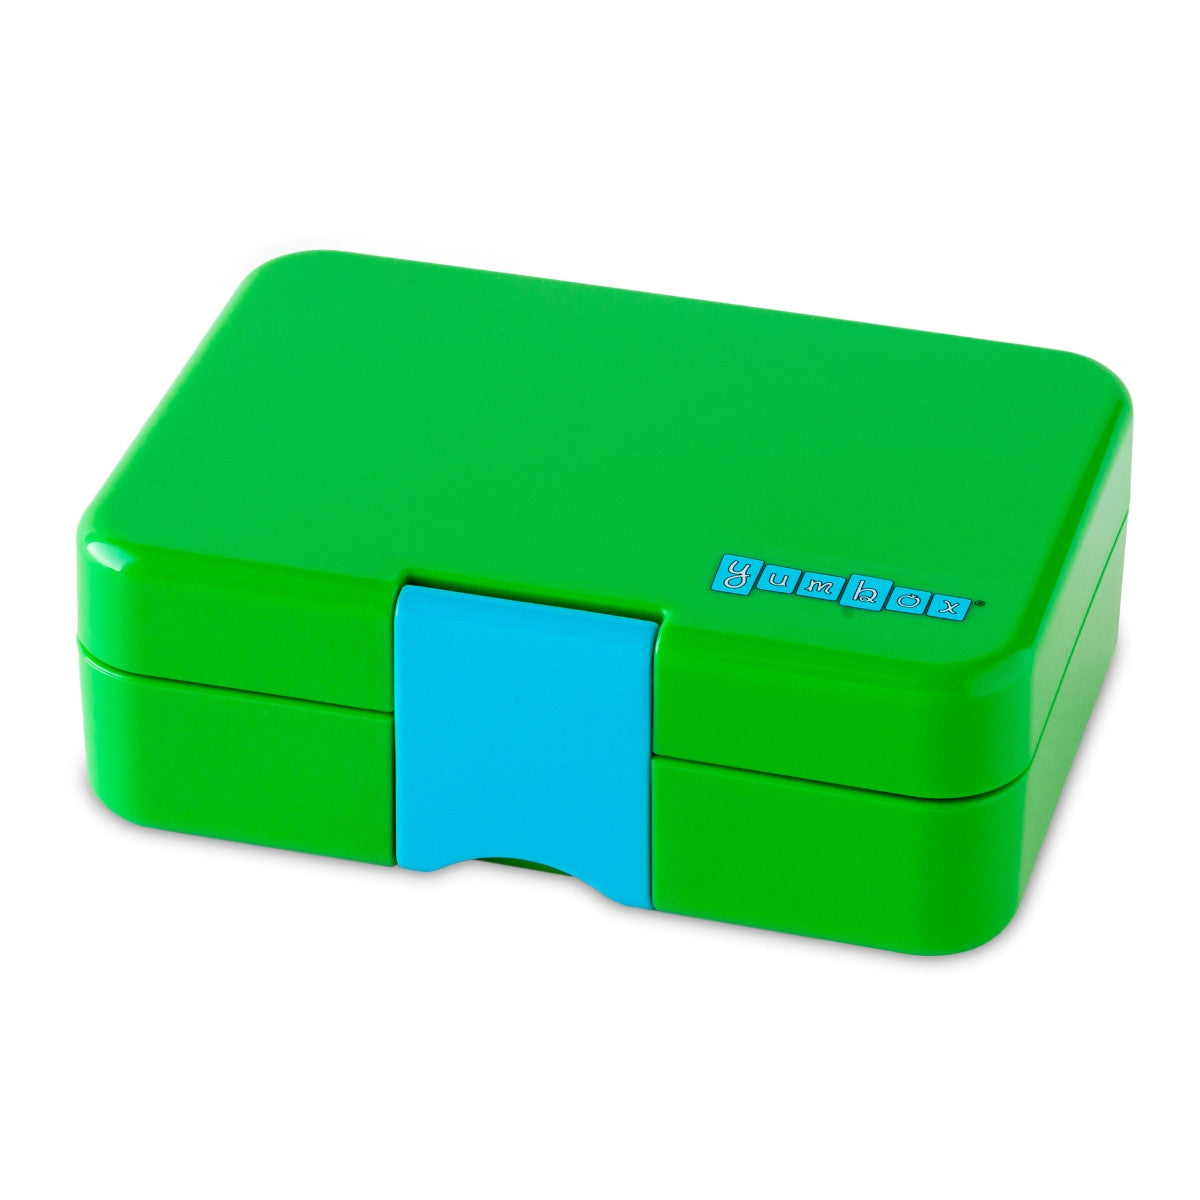 Green mini snack box closed showing blue latch.